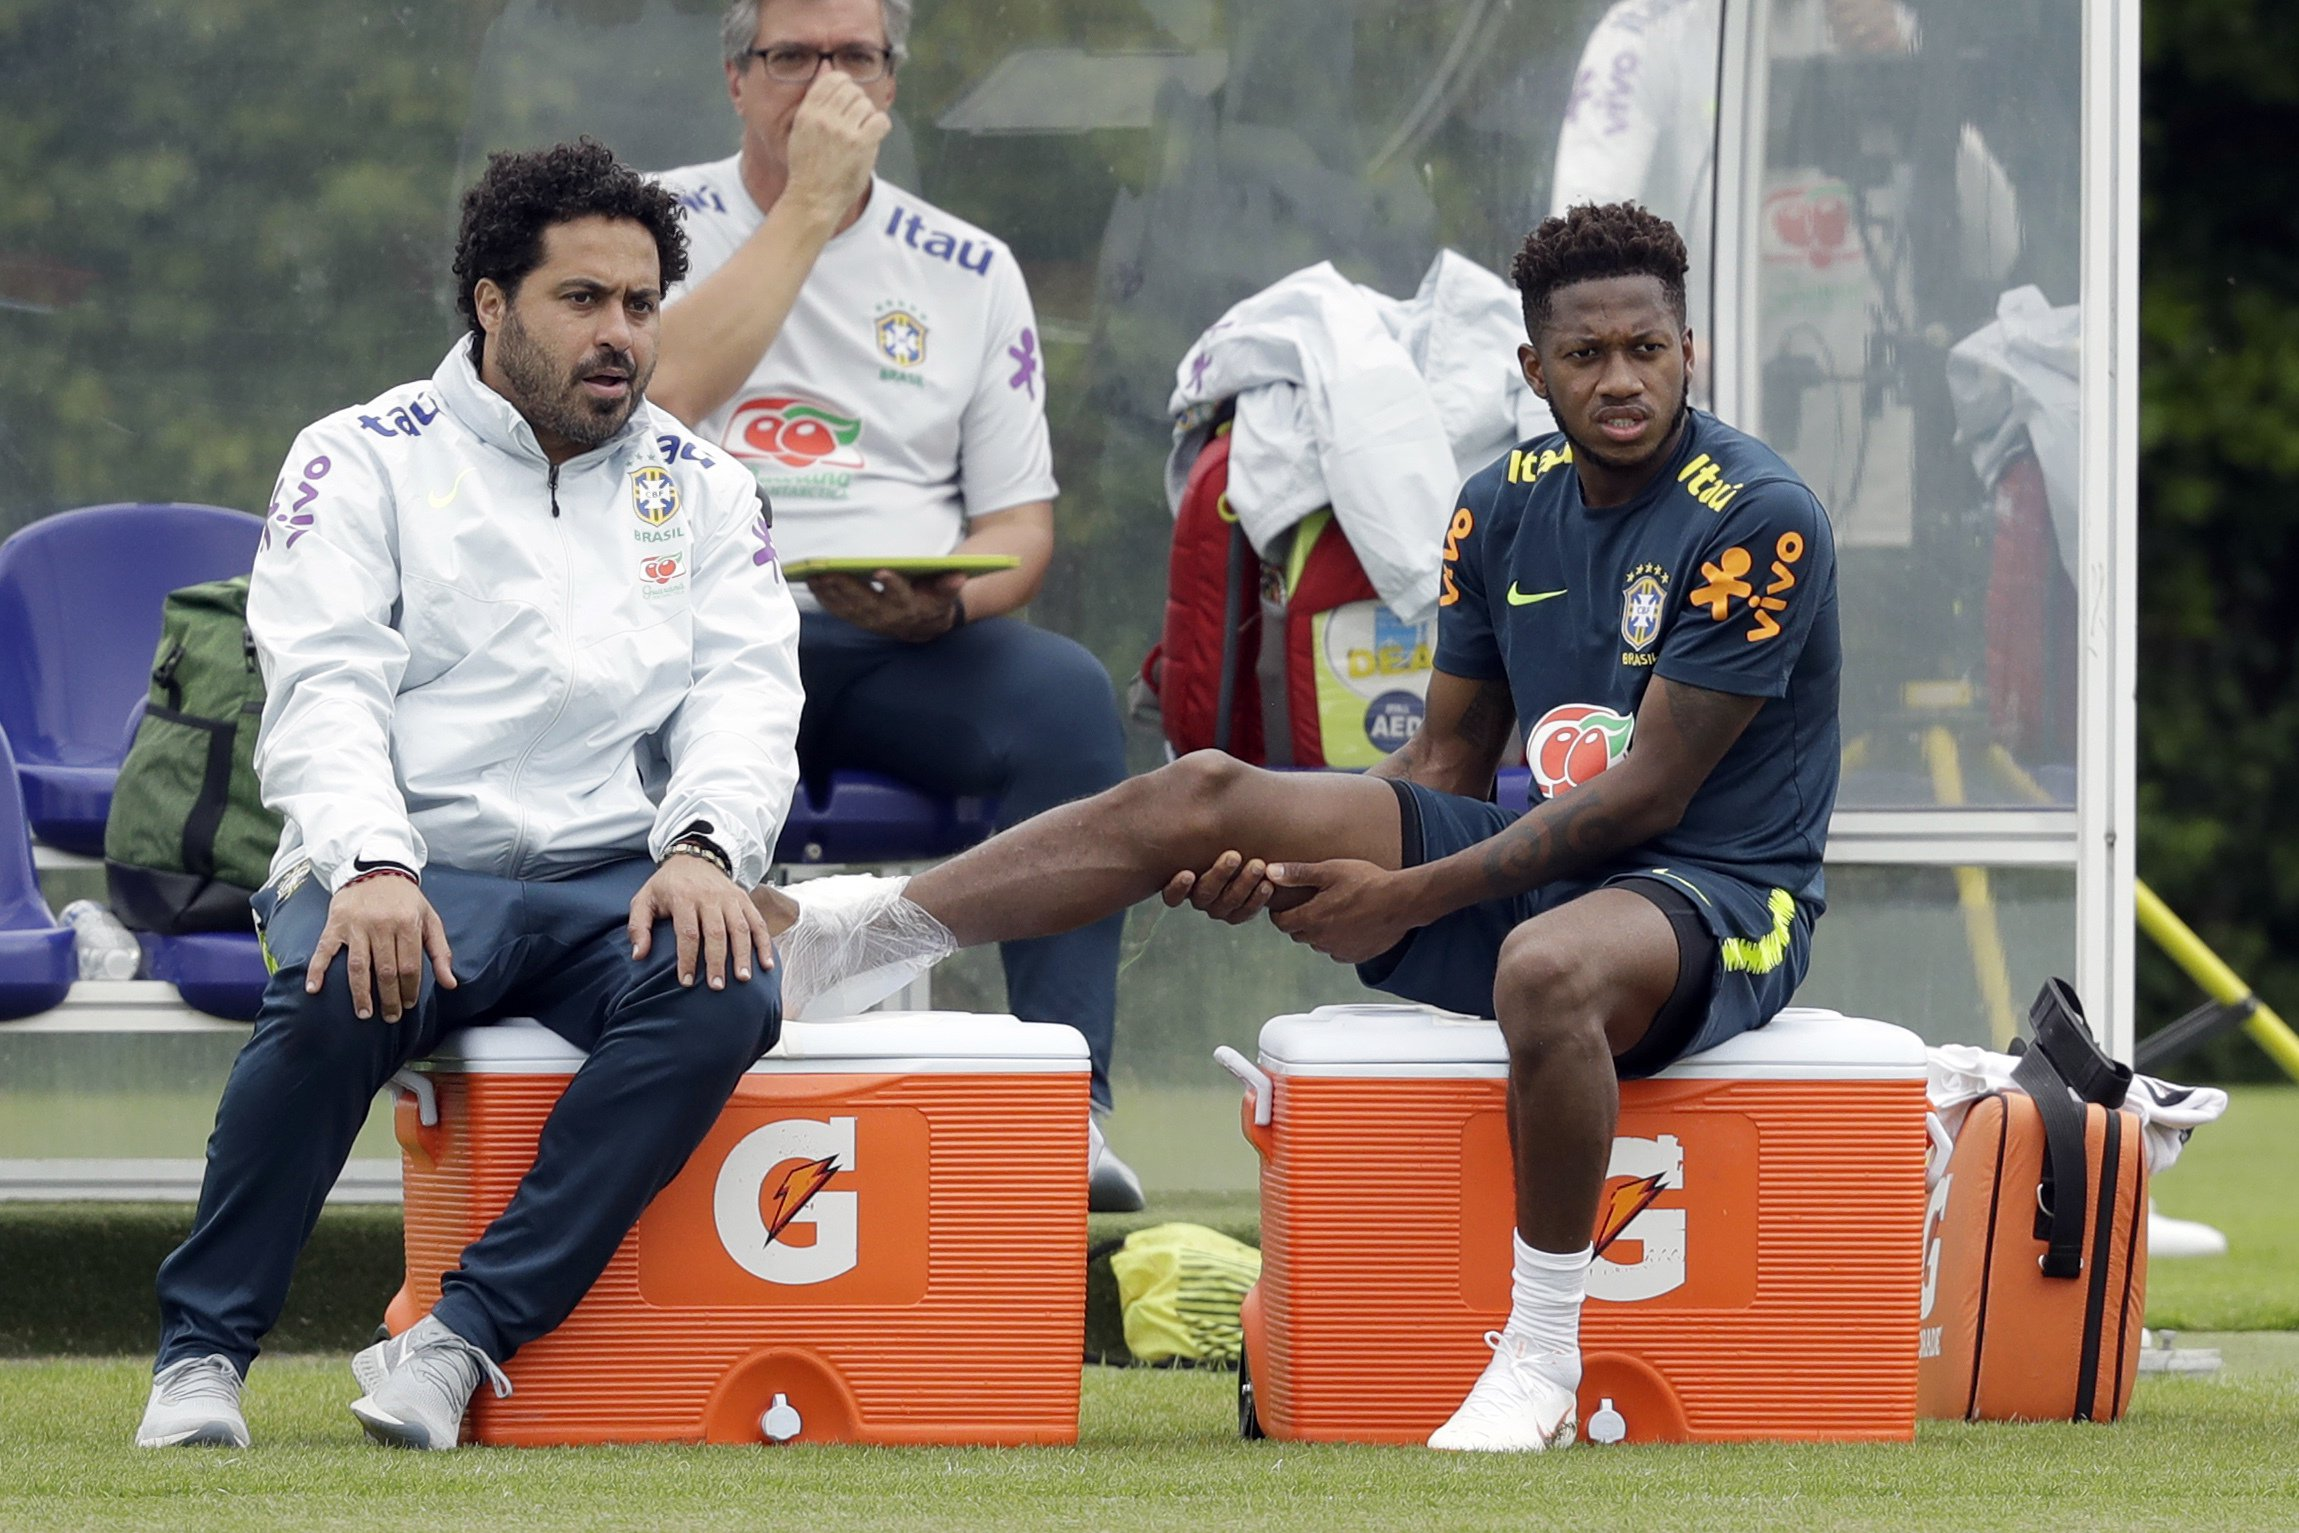 Brazil's Fred sits with an injury to his right ankle from a tackle from Casemiro after walking off the pitch to receive treatment during a national soccer squad training session at the training facilities of Tottenham Hotspur football club in Enfield, England, Thursday, June 7, 2018. (AP Photo/Matt Dunham)